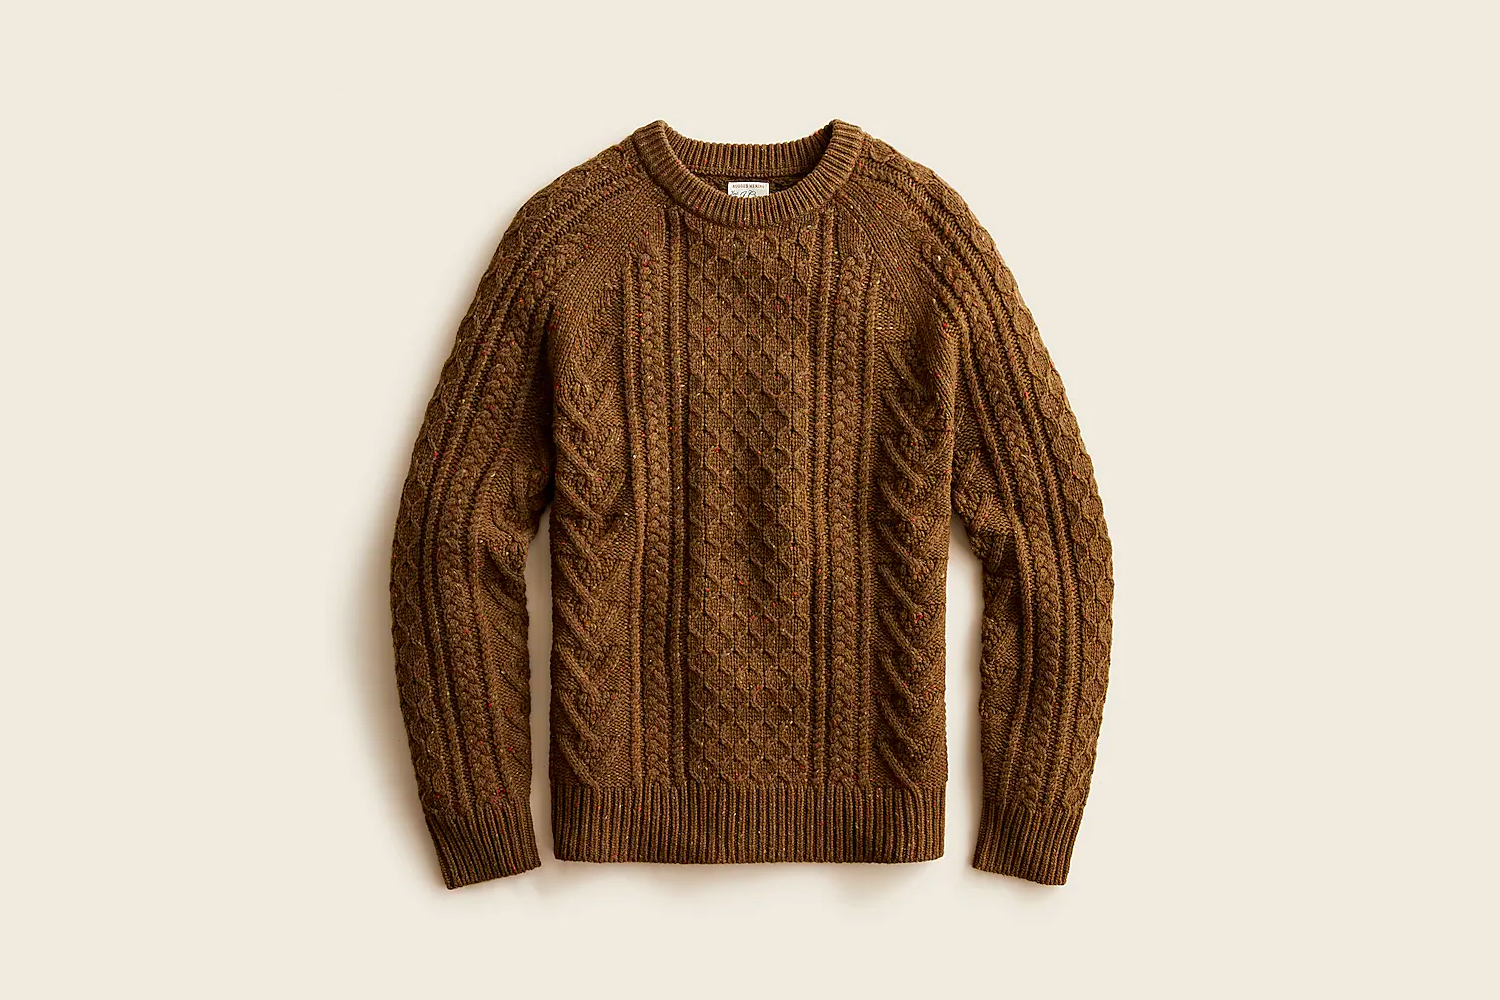 Robust merino wool cable-knit sweater in donegal